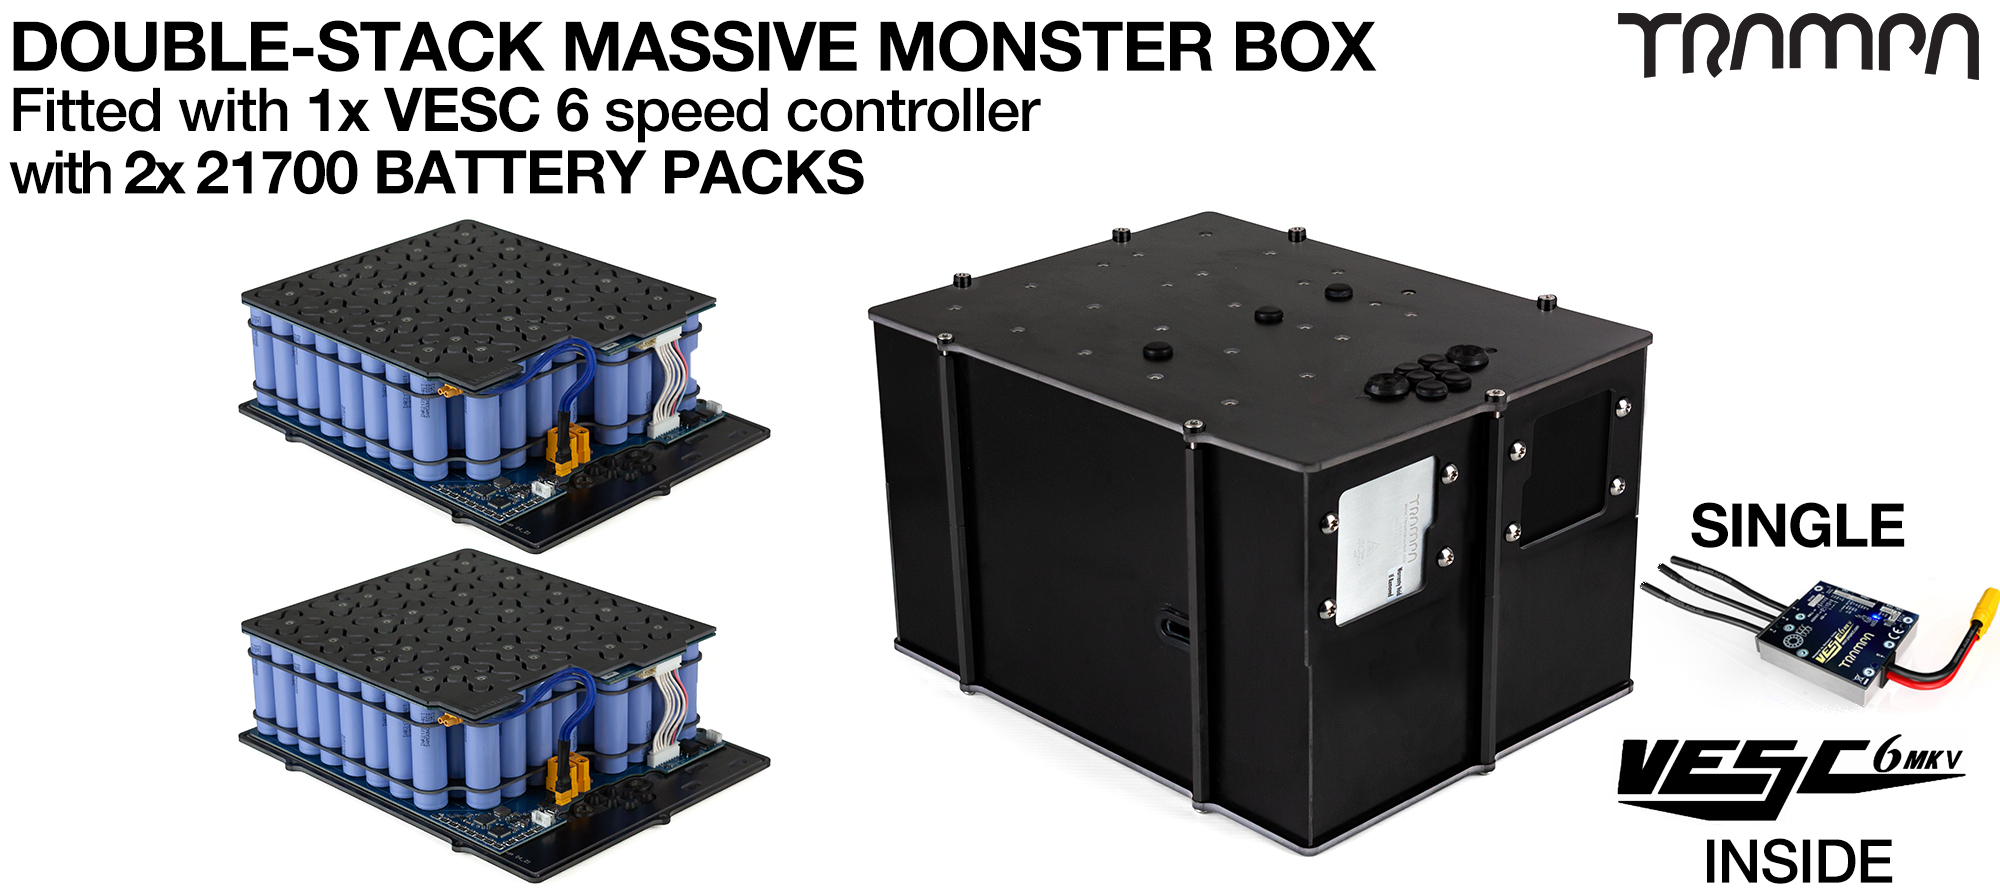 2WD DOUBLE STACK MASSIVE MONSTER Box with 21700 PCB Pack 1x VESC 6 & 168x 21700 cells 12s7p - Specifically made to work in conjunction with TRAMPA's Electric Decks but can be adapted to fit anything - UK Customers only